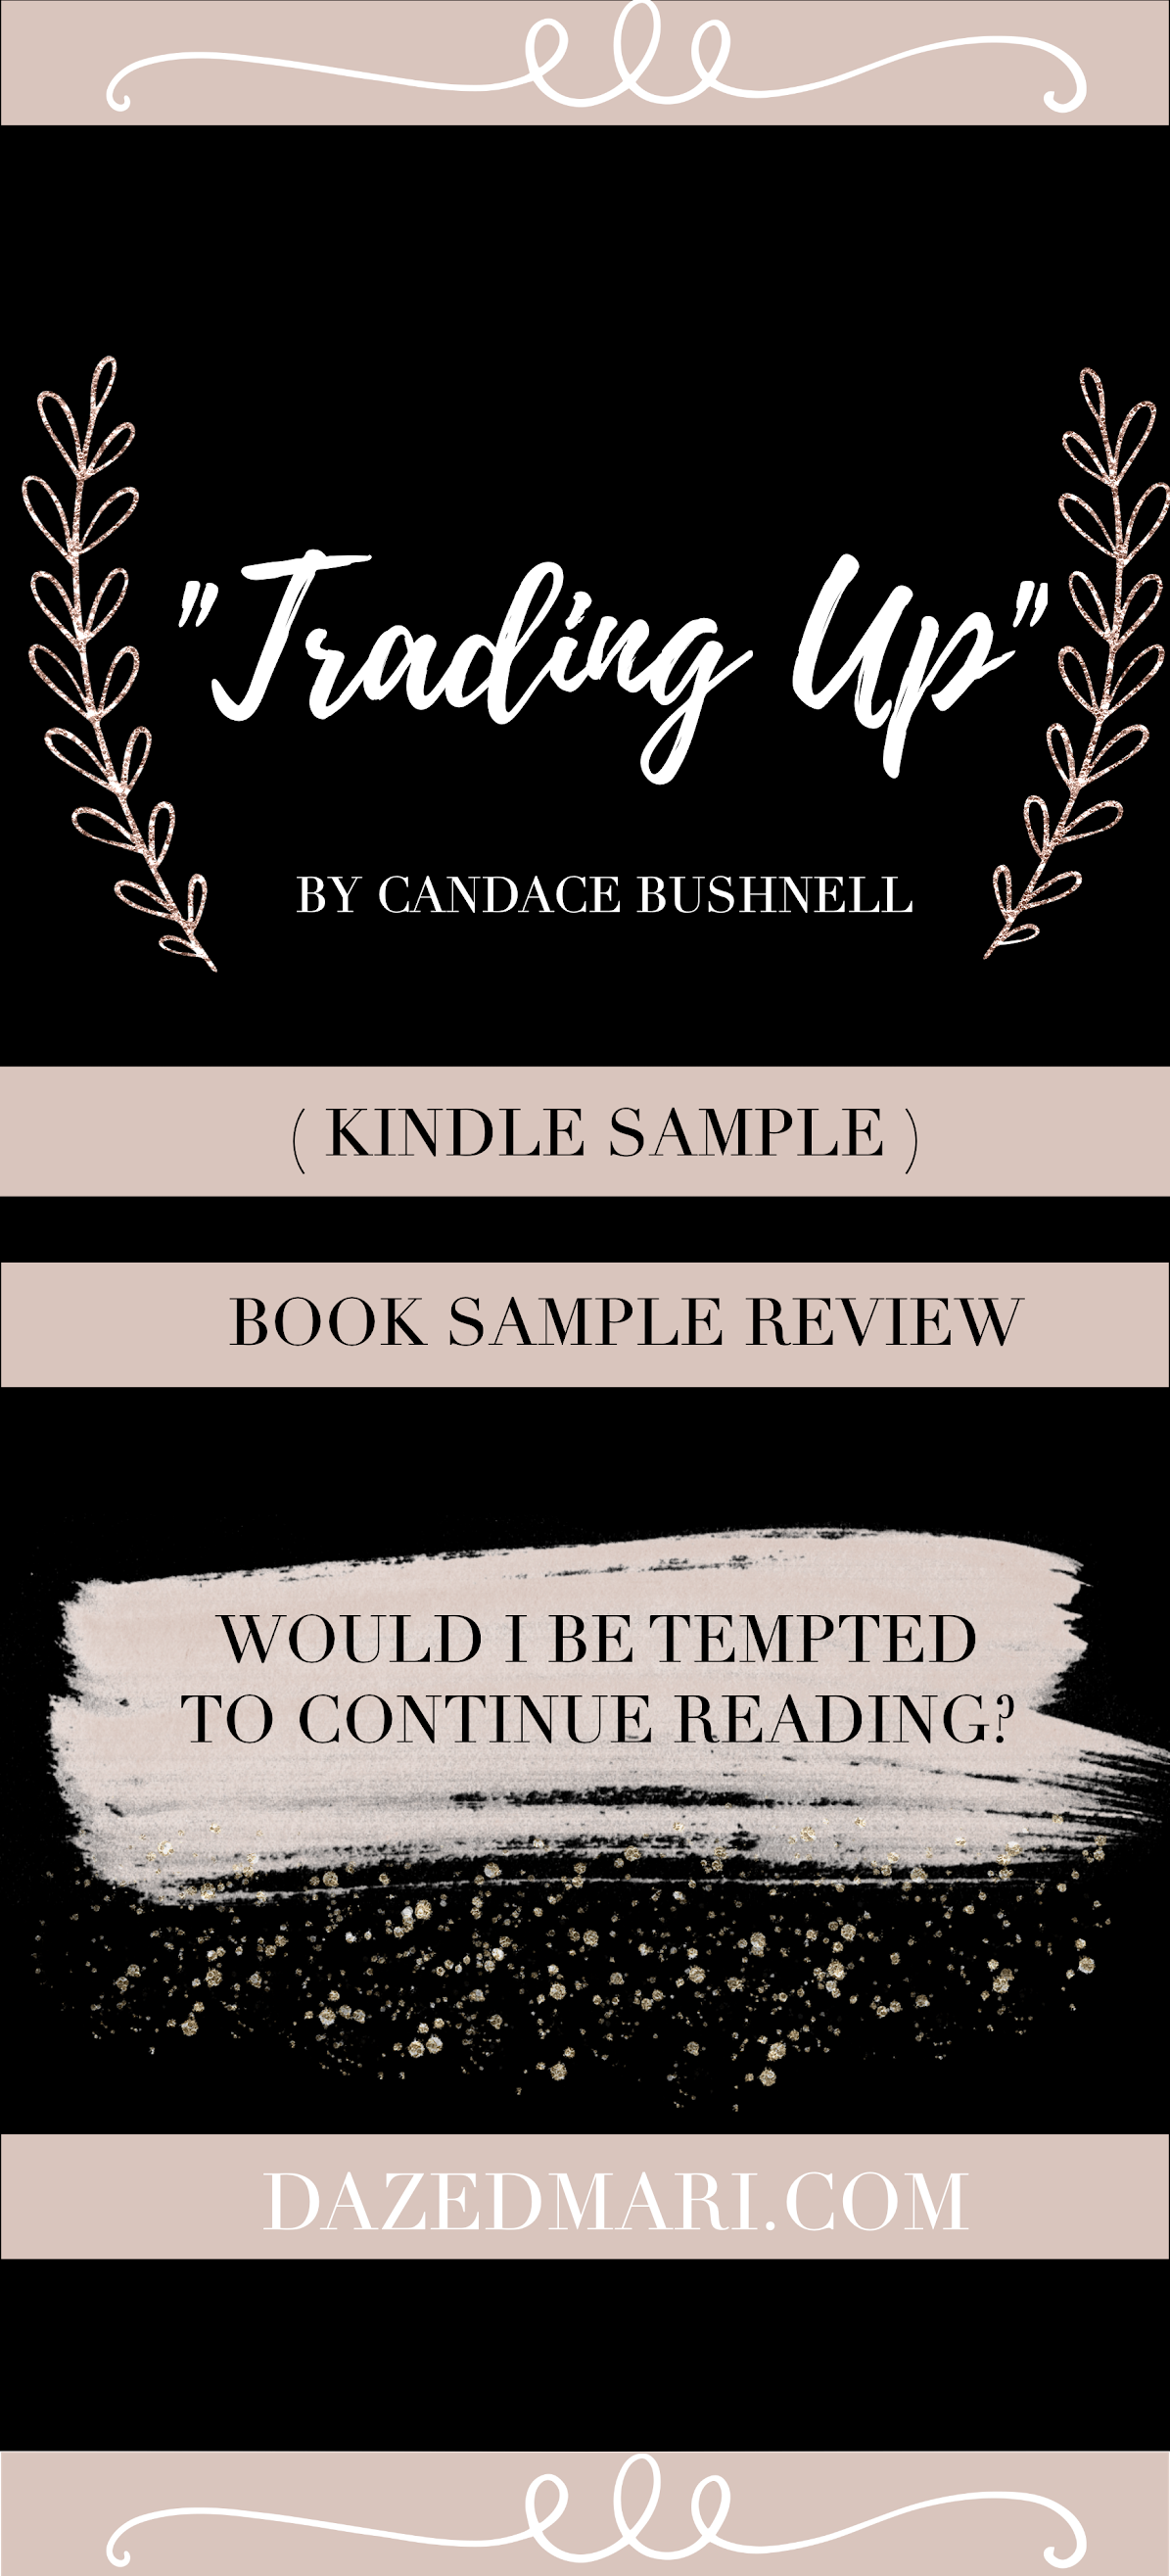 Book Sample Review, Trading Up by Candace Bushnell